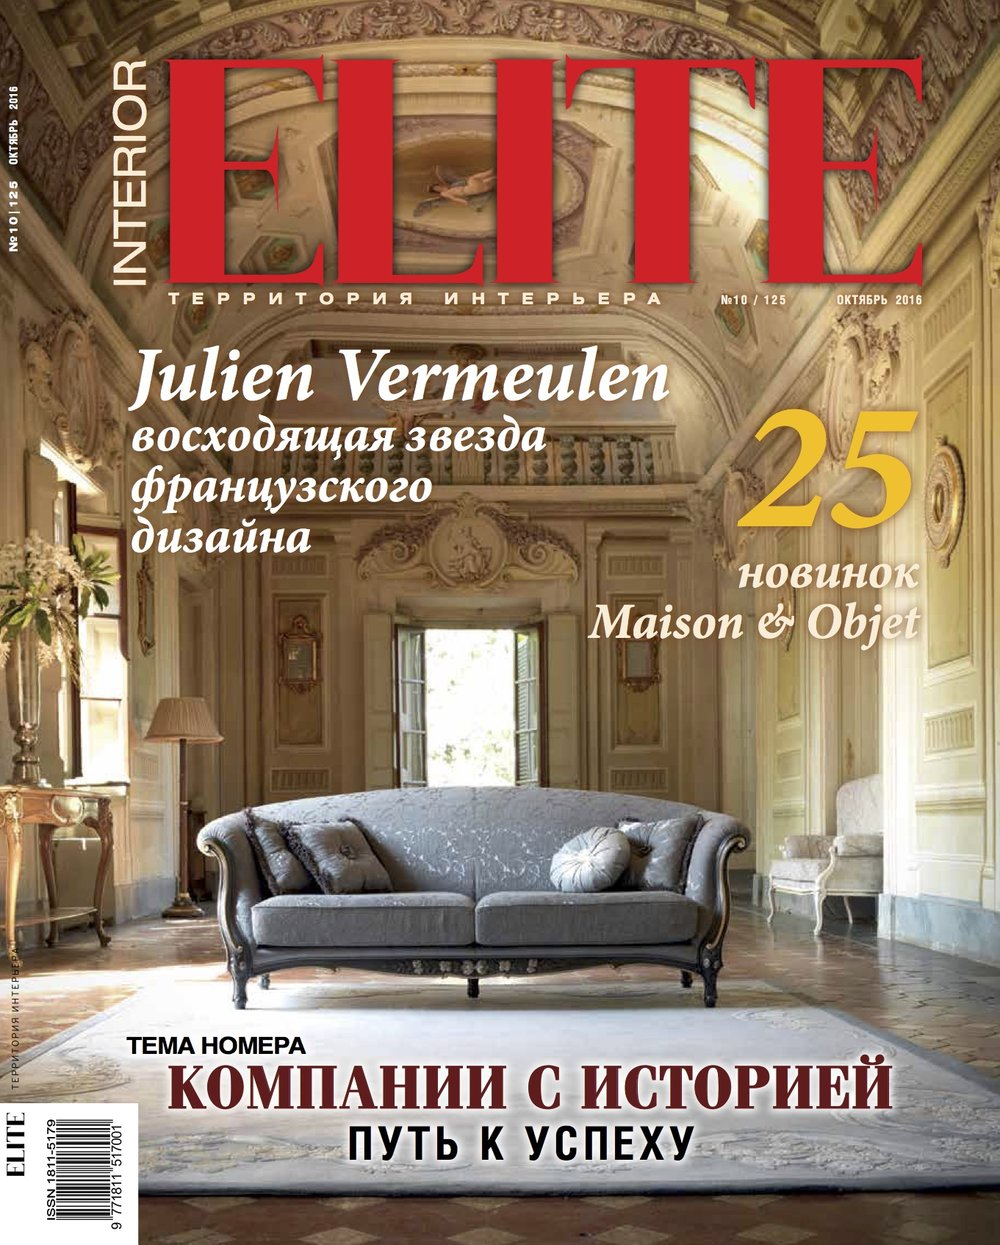 ELITE front cover Oct 2016.jpg